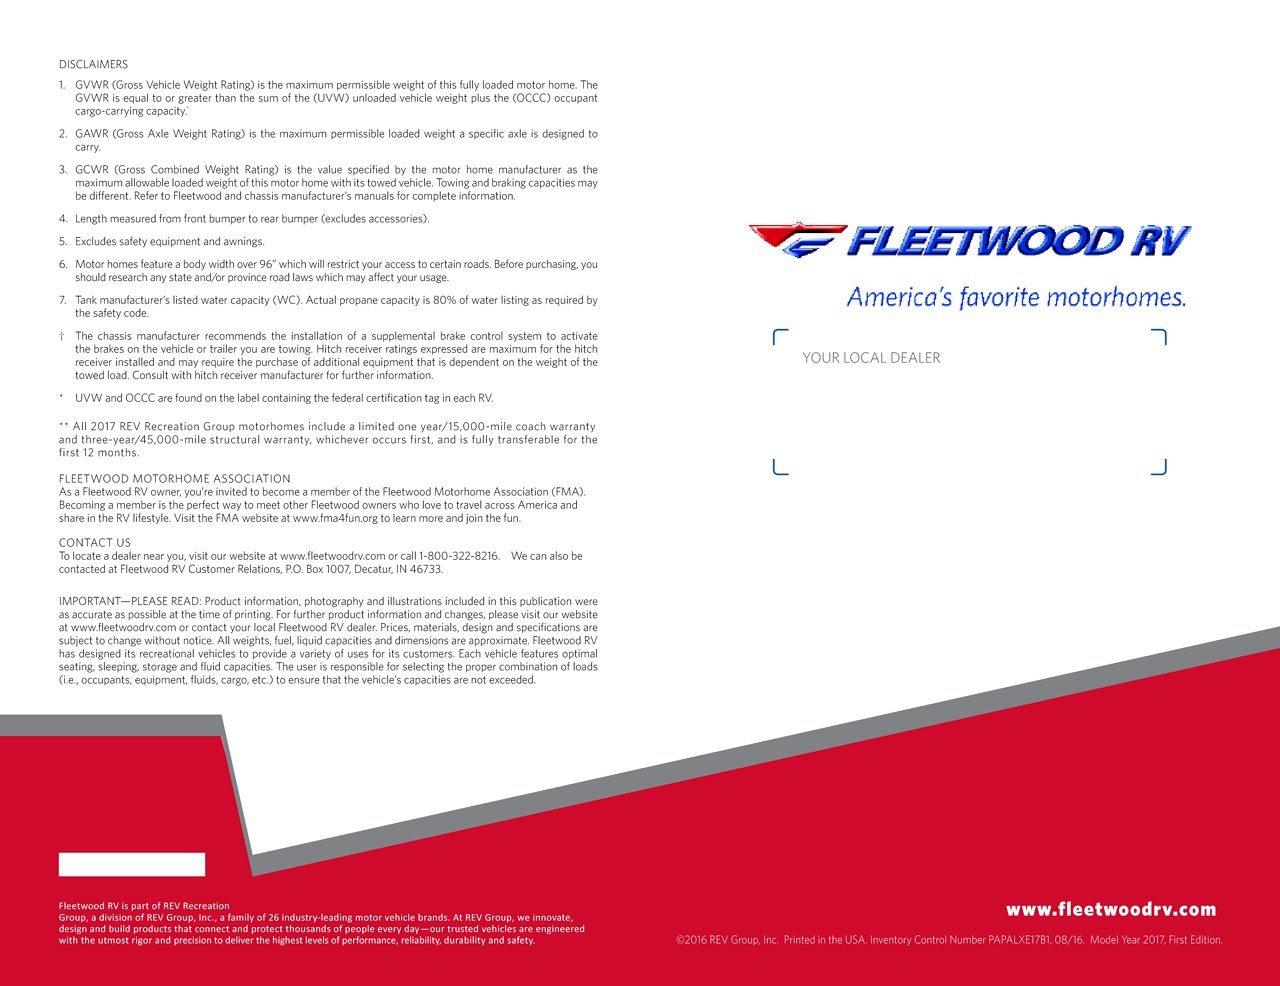 2017 Fleetwood Pace Arrow Pace Arrow Lxe Brochure | Download